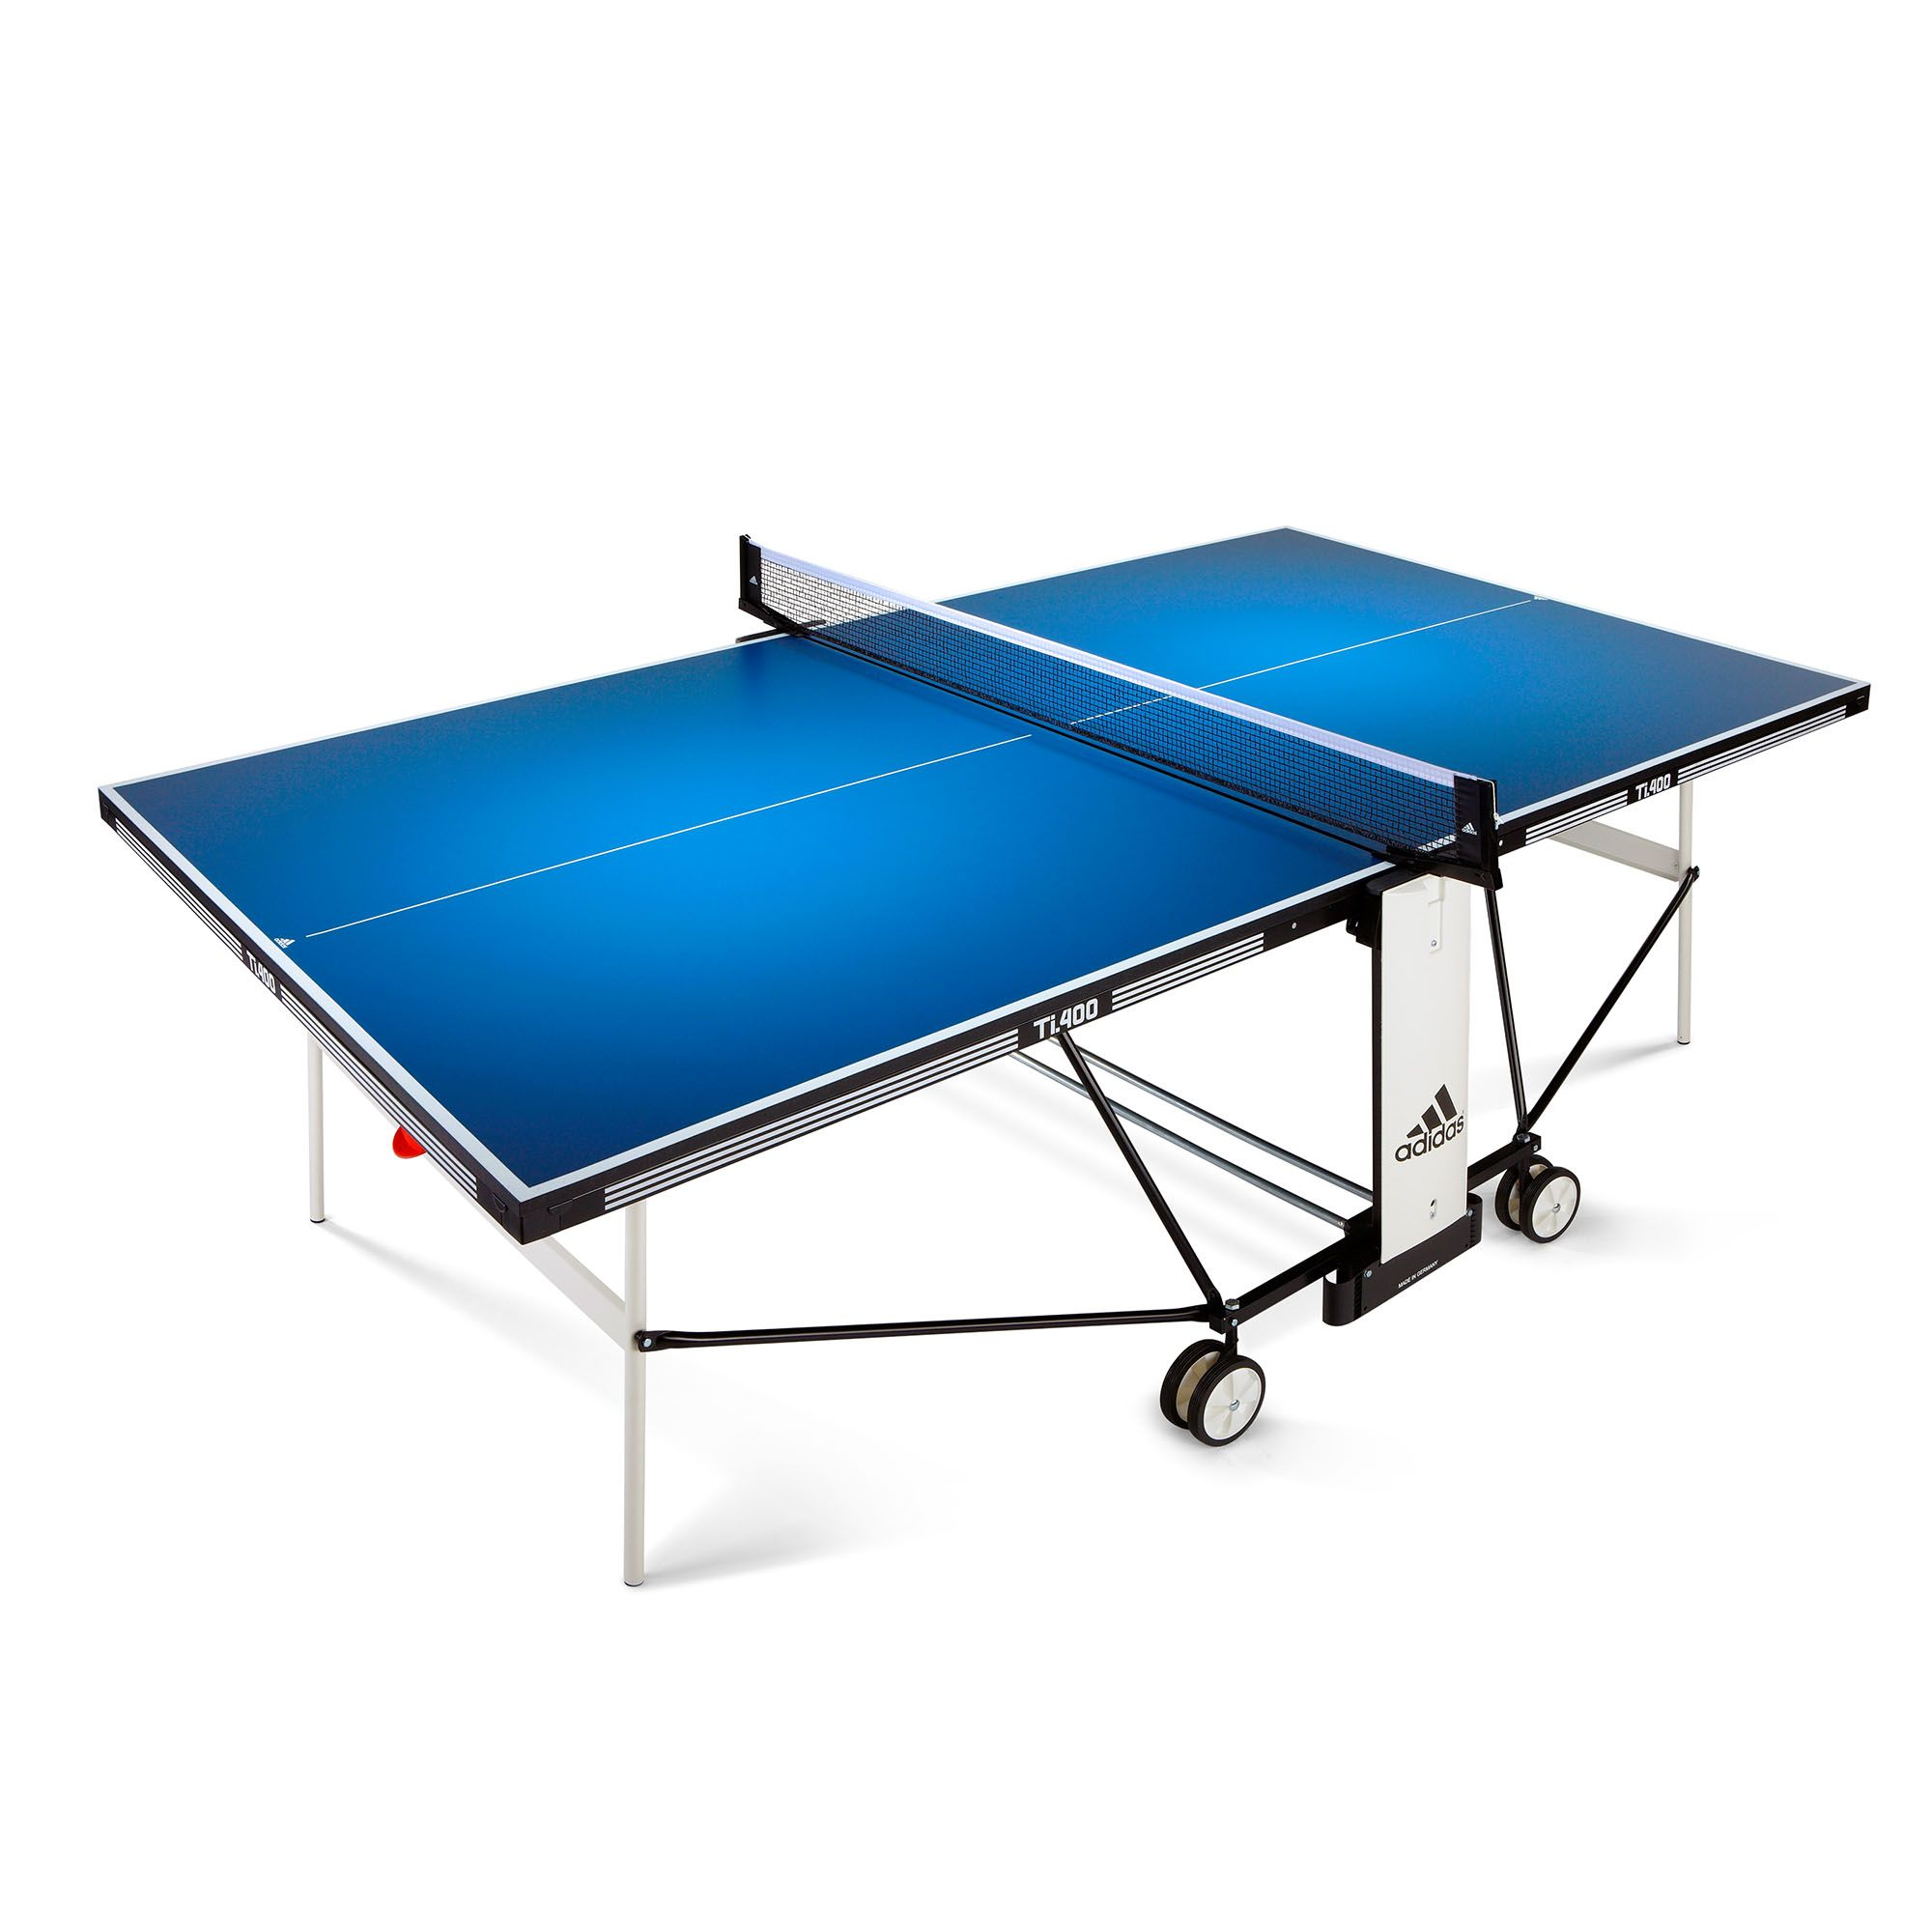 Adidas Ti400 Indoor Table Tennis Table Sweatbandcom